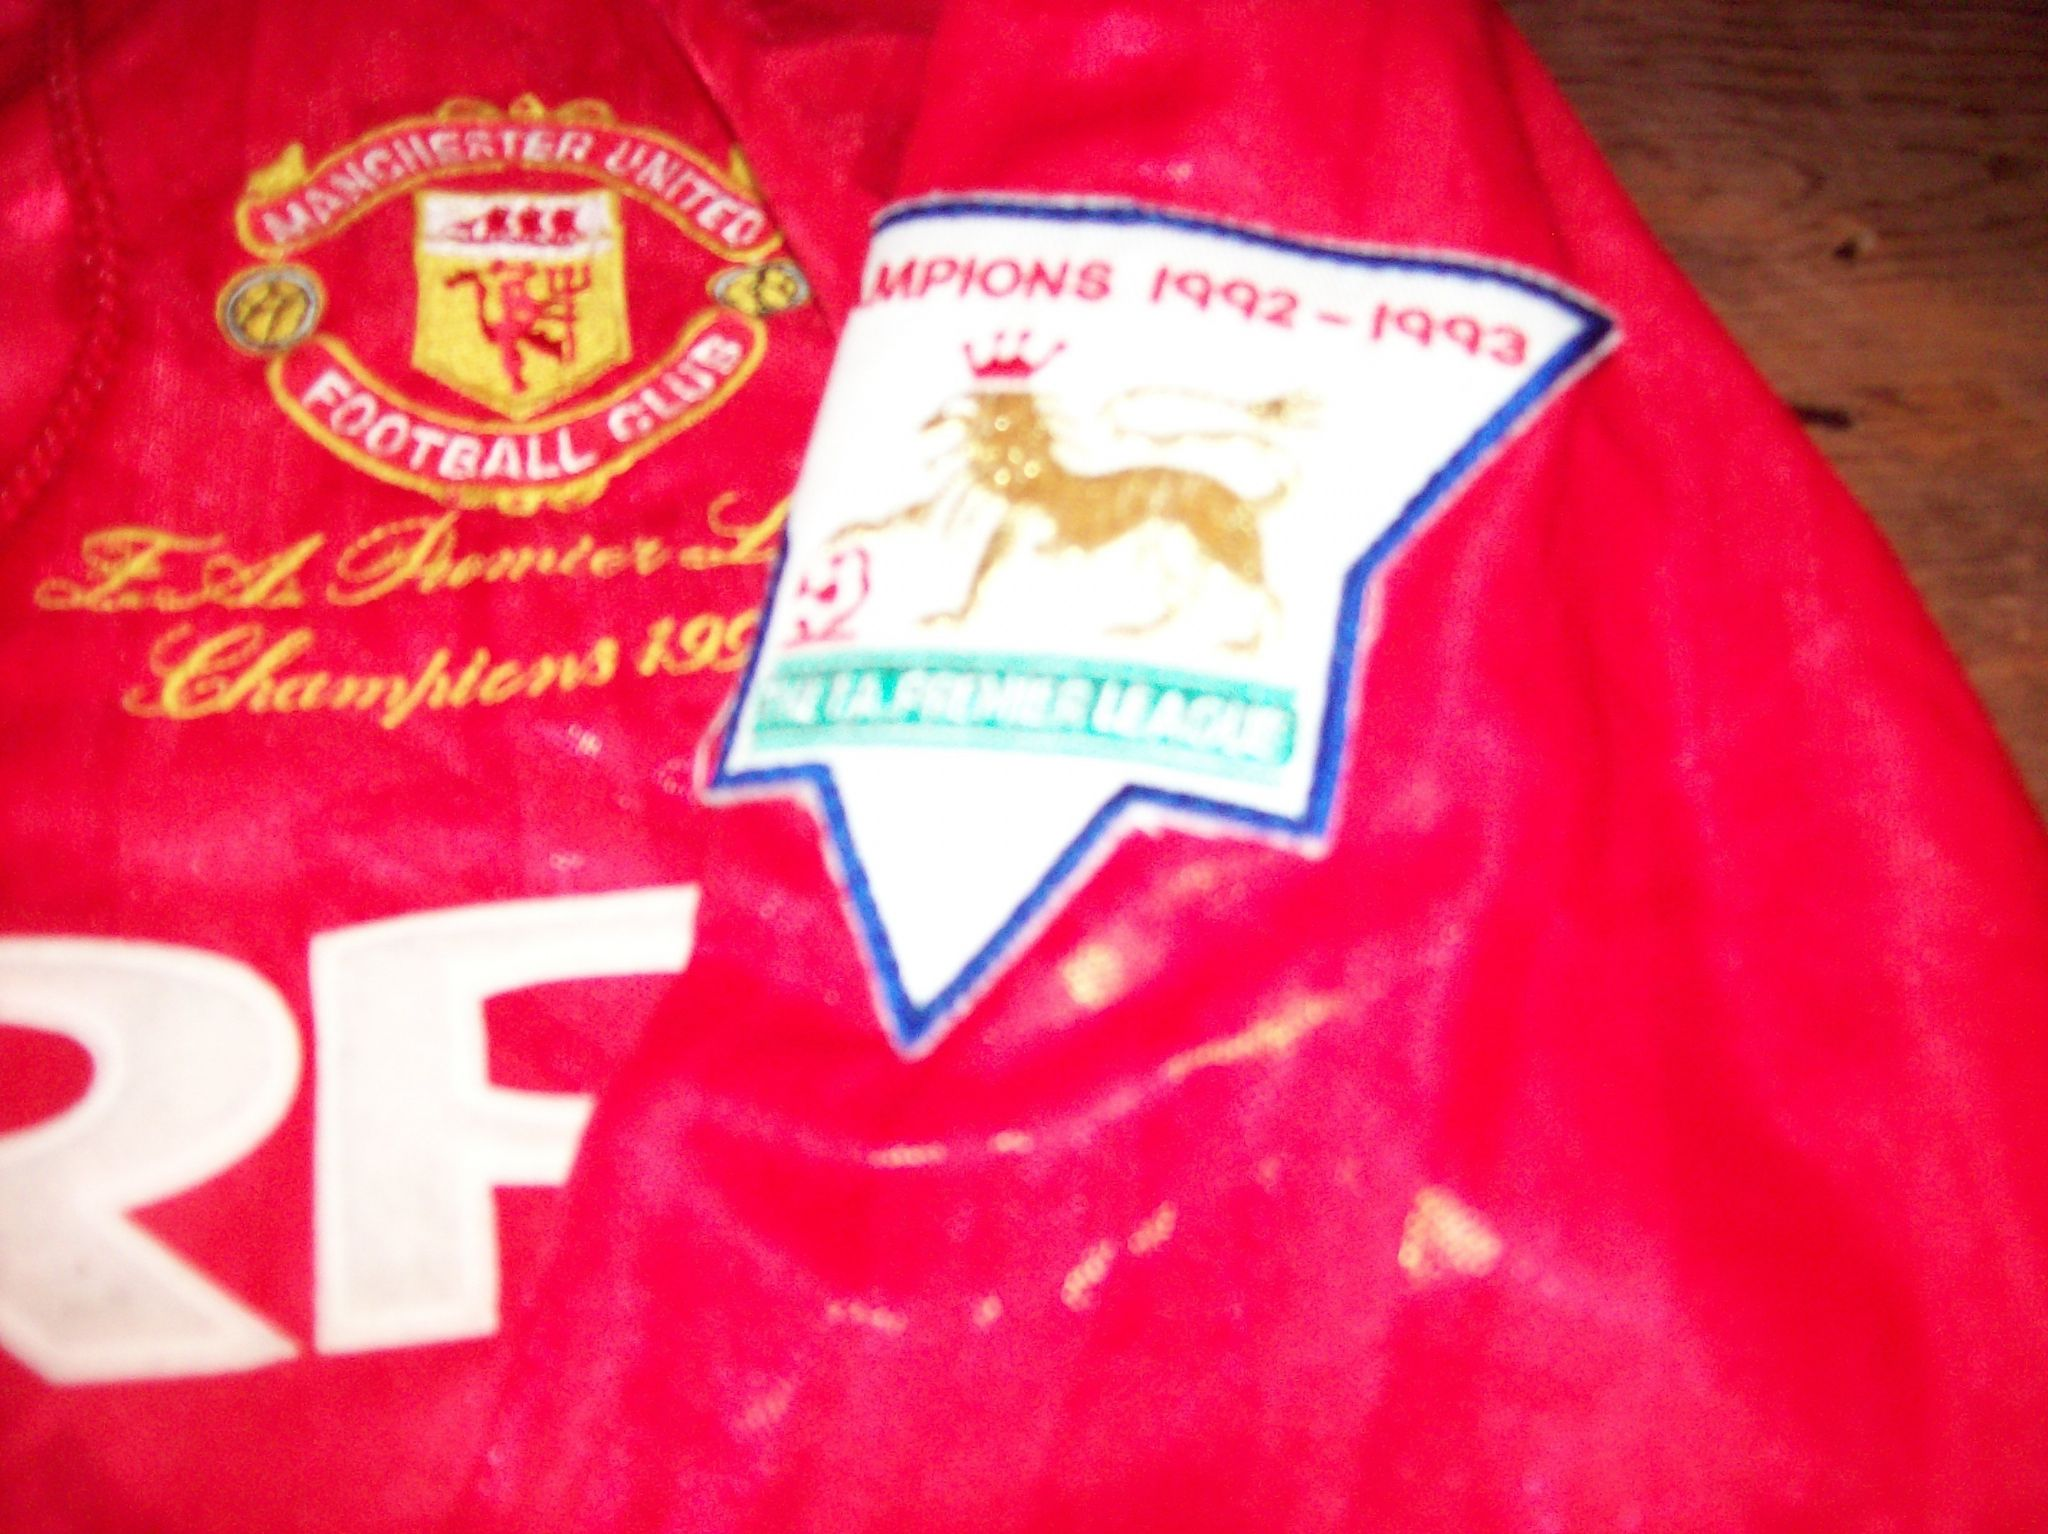 Global Classic Football Shirts 1993 Manchester United